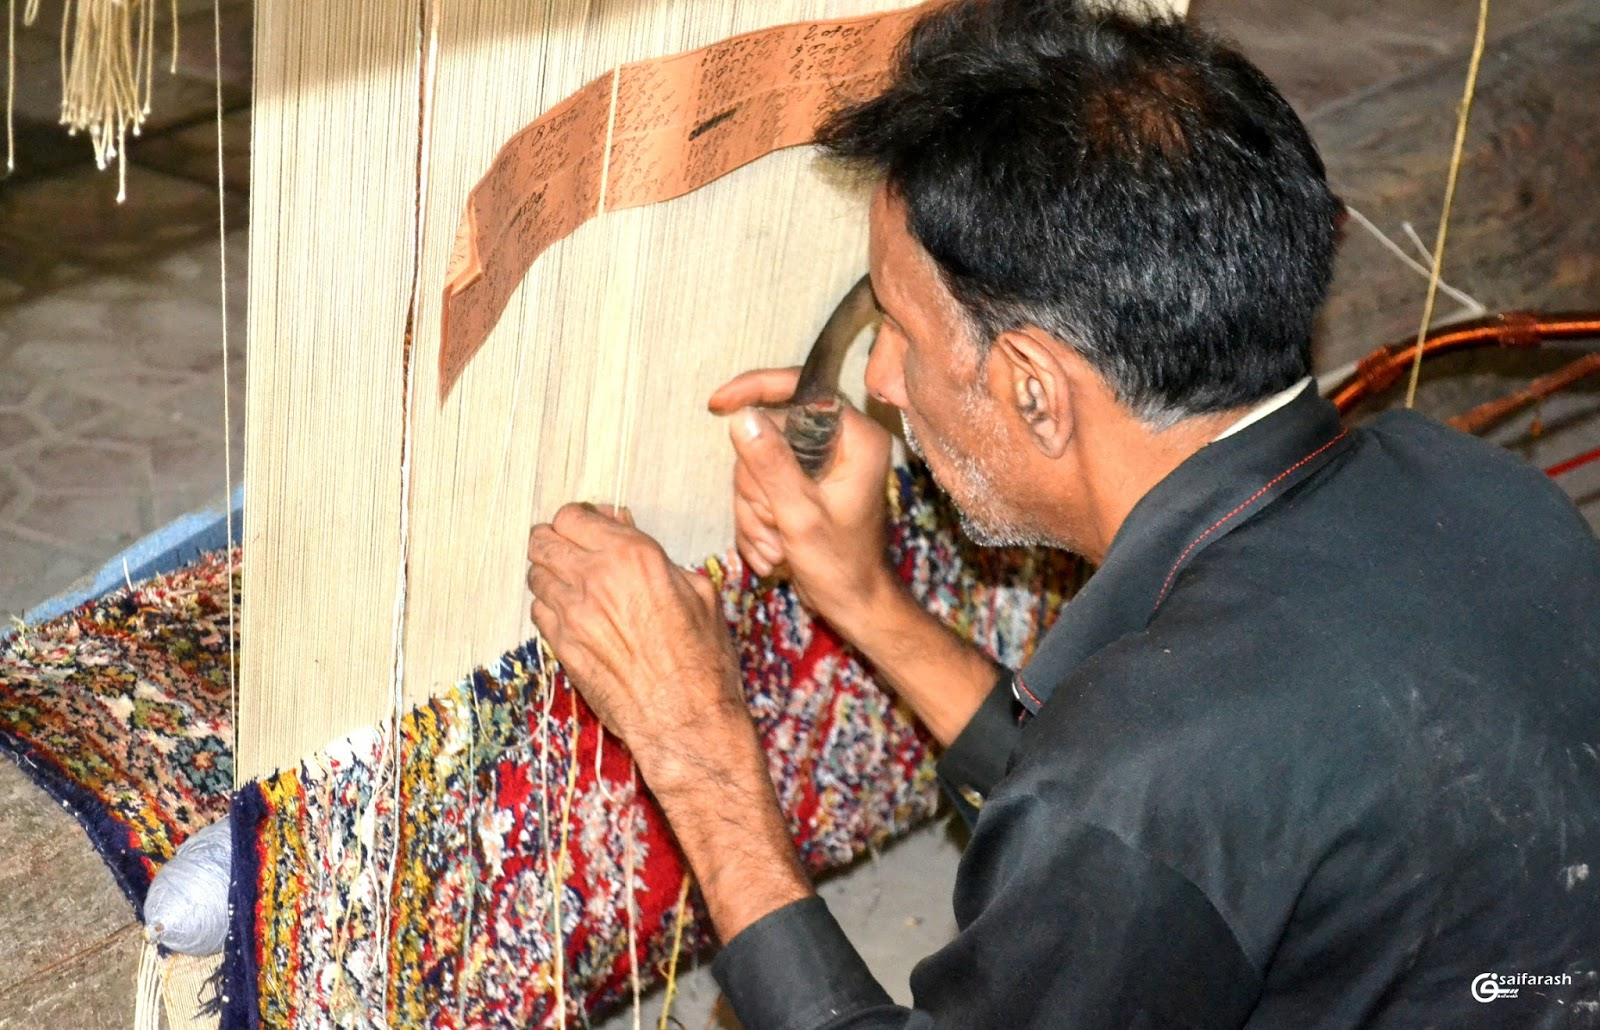 Saif Arash Photography Kashmir Handicrafts Rug Weaving